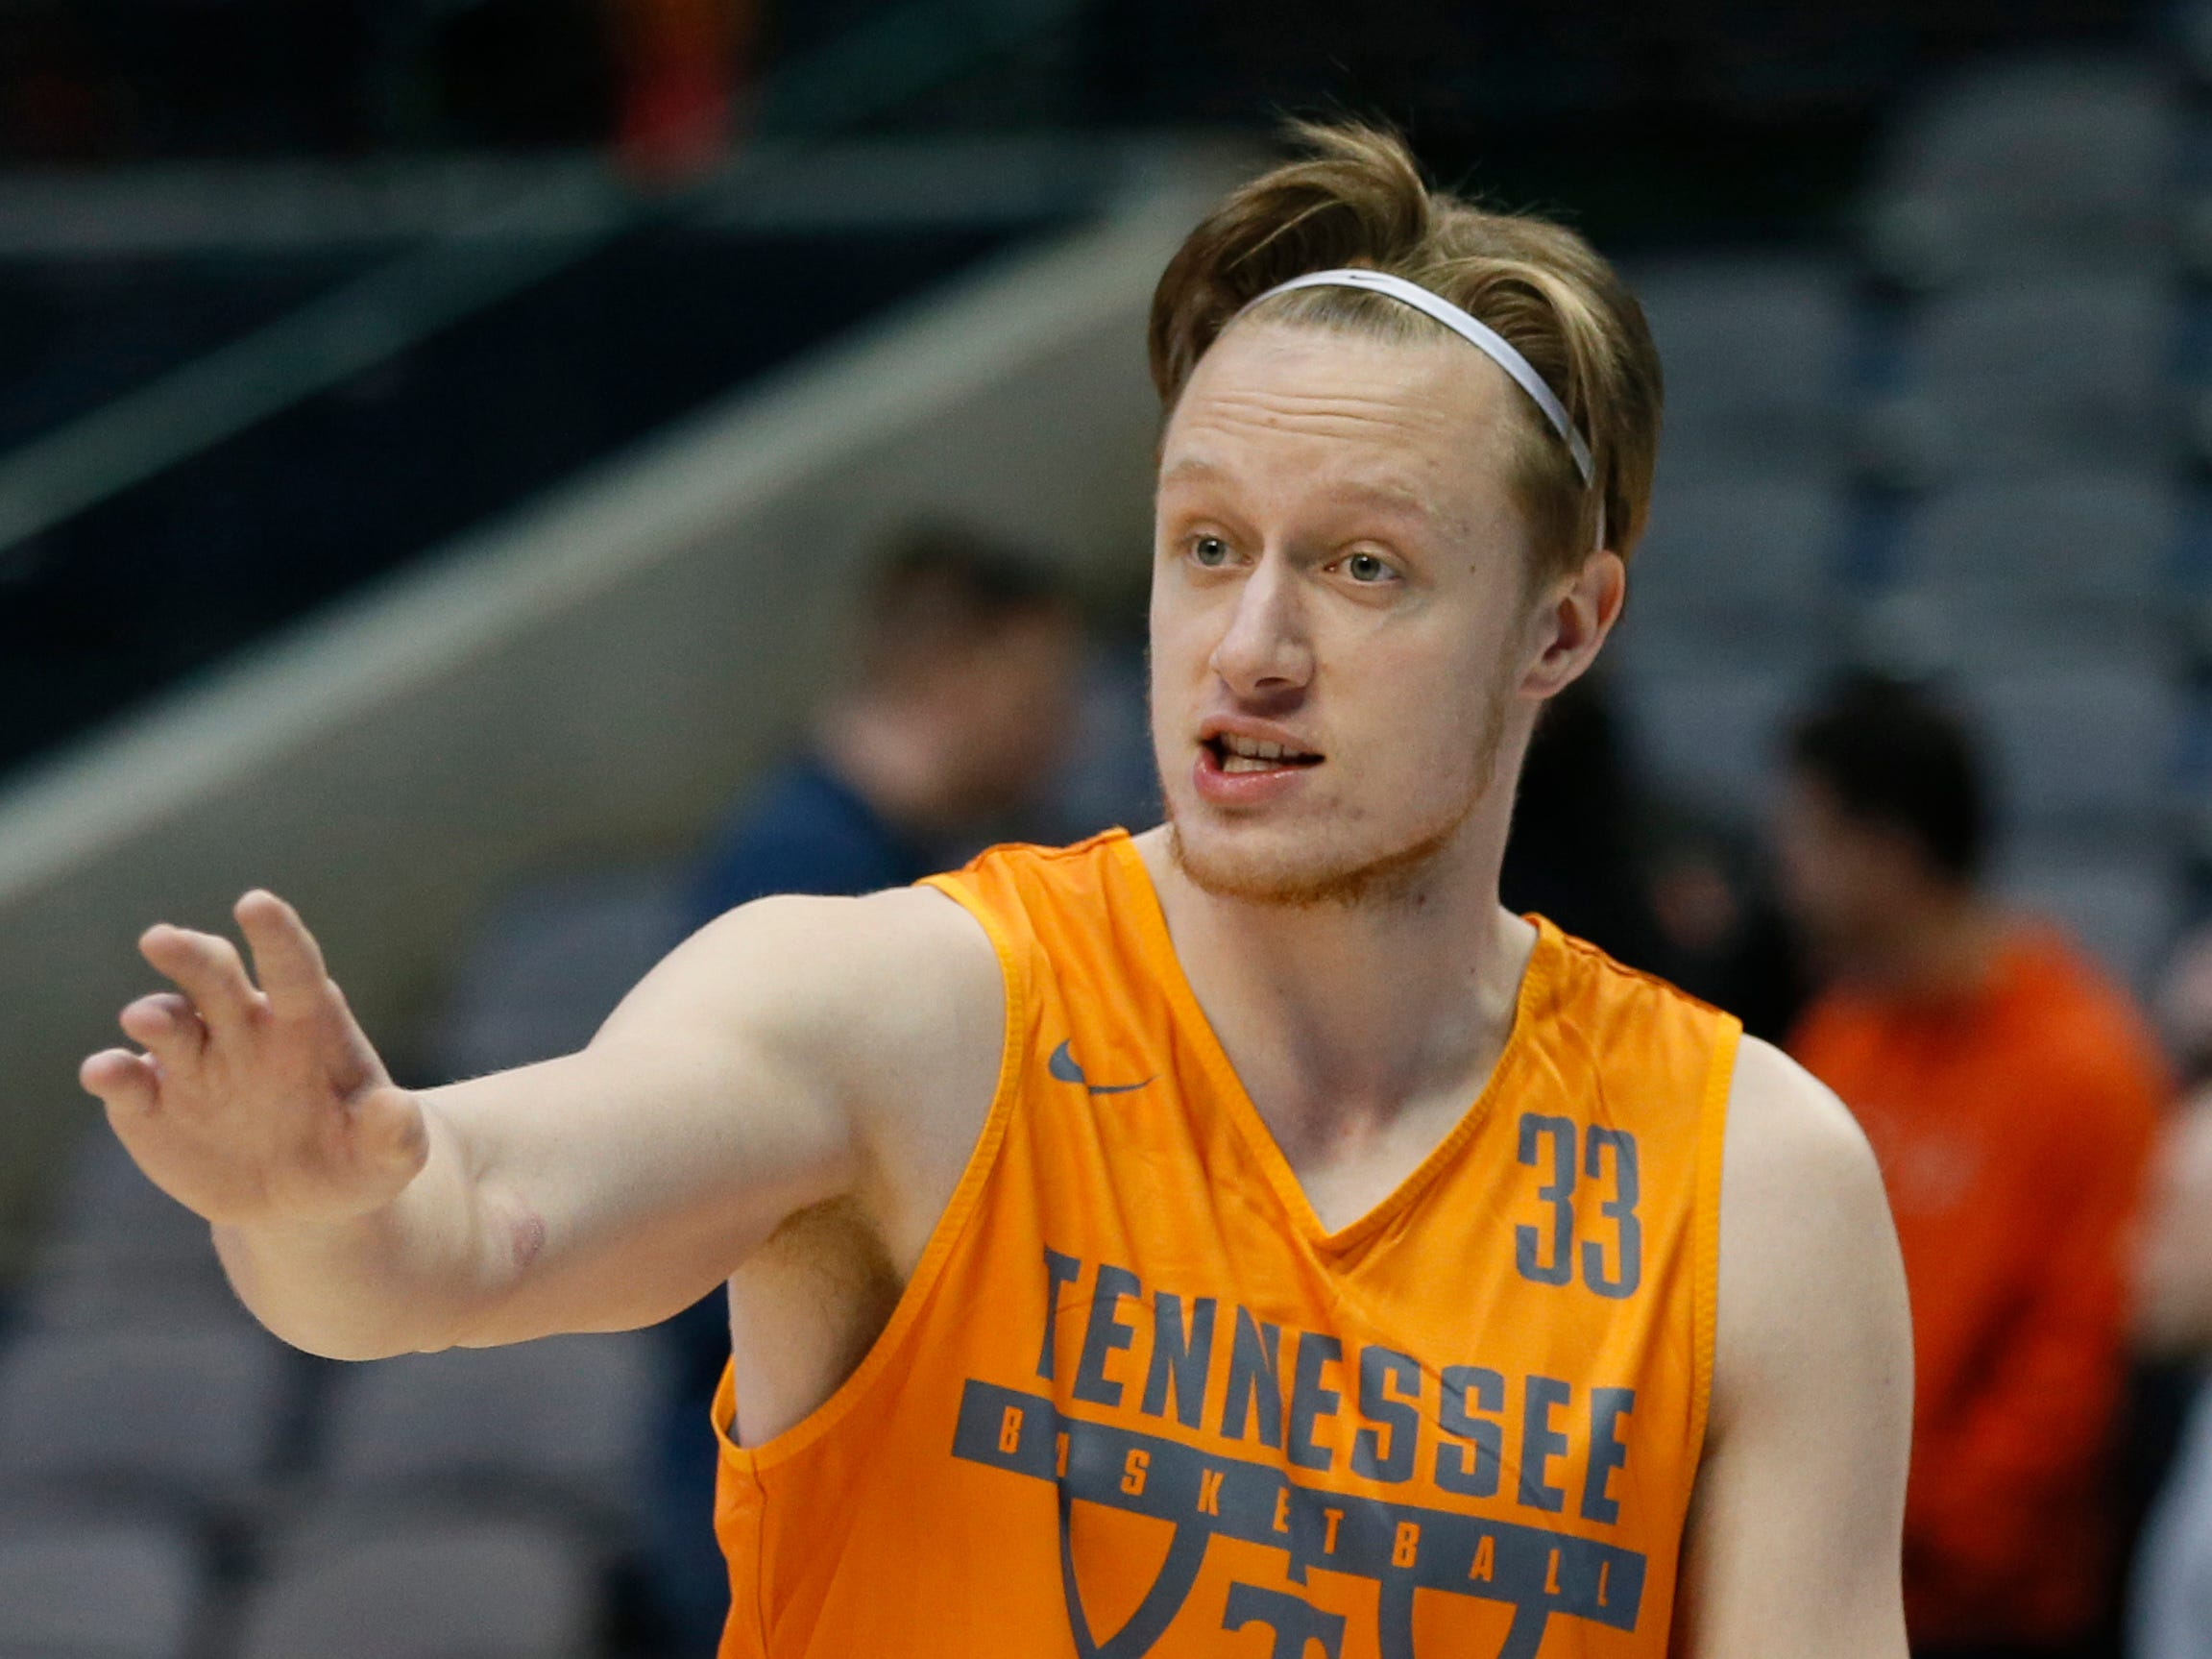 Tennessee Volunteers forward Zach Kent (33) reacts during the practice day before the first round of the 2018 NCAA Tournament at American Airlines Center.